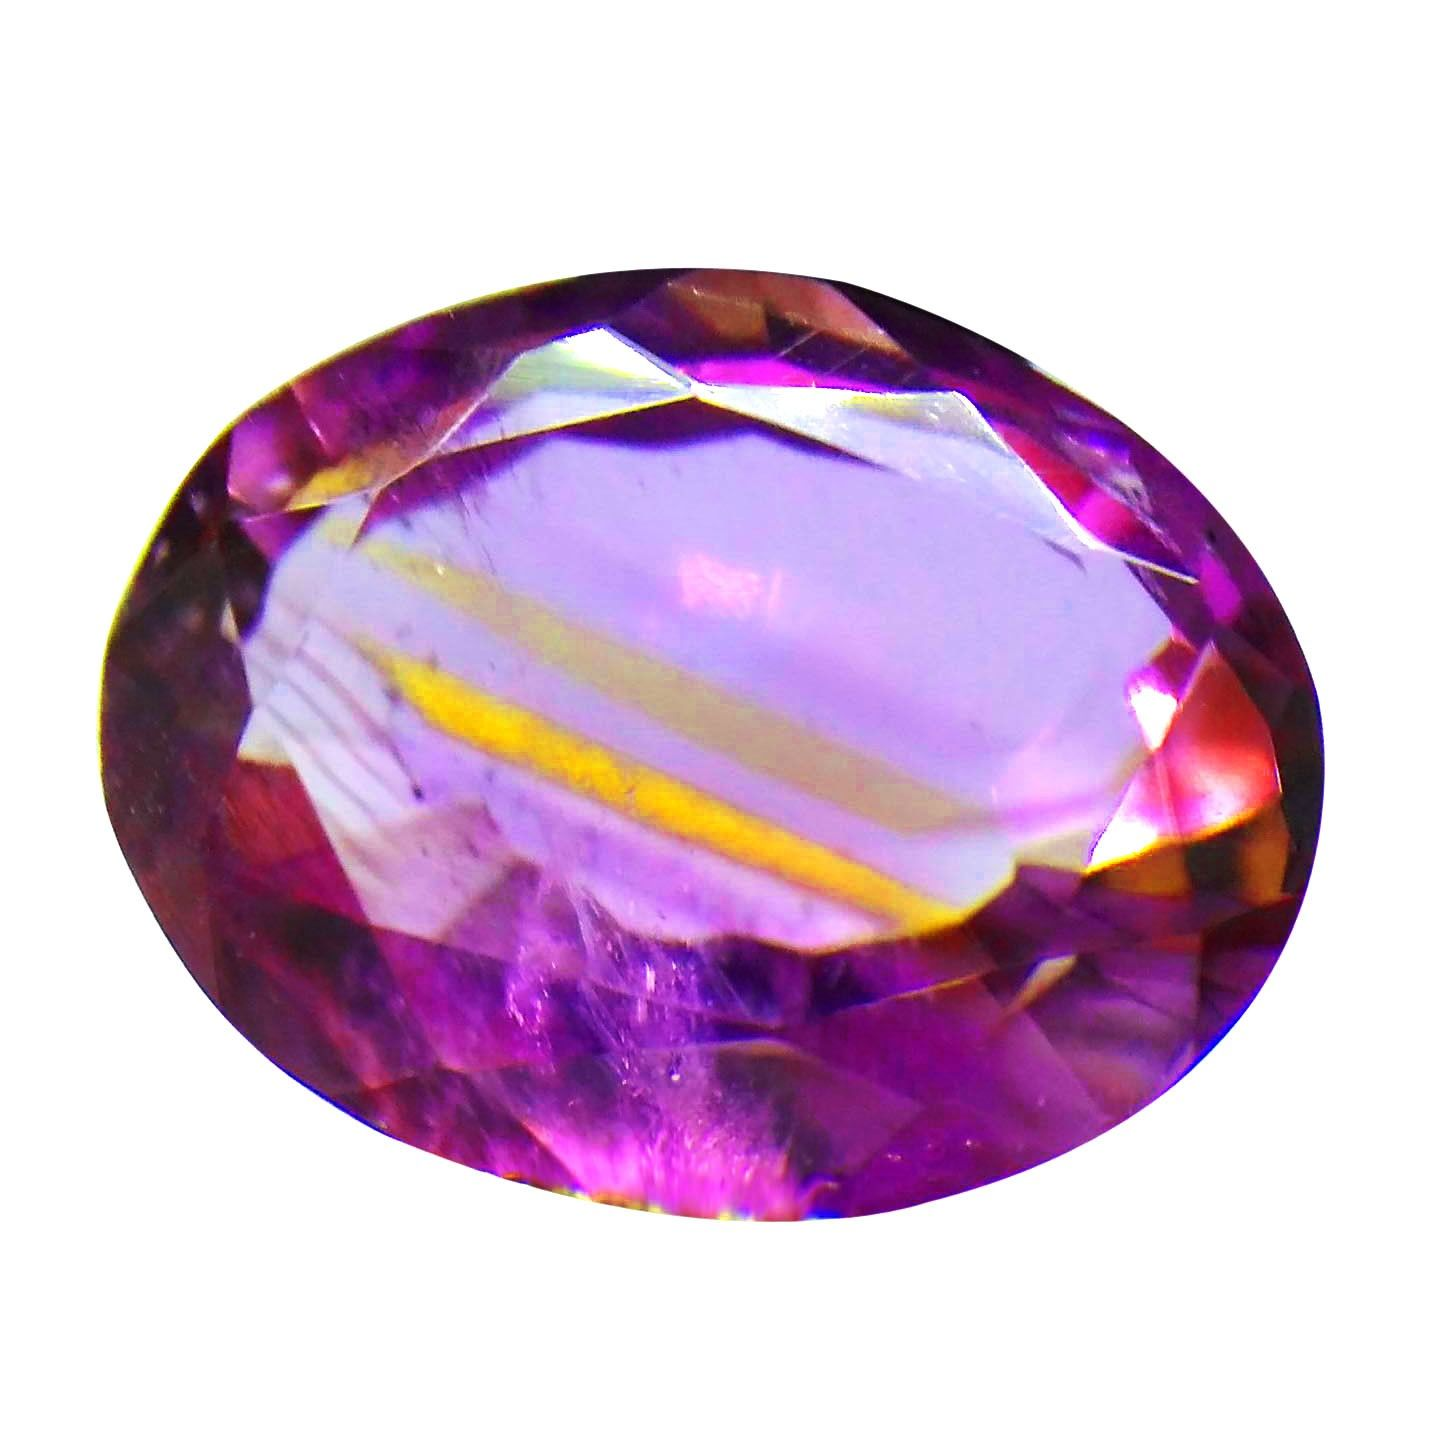 pebble scheme bright shutterstock round gem jewelry white opal photo free stone gemstone ruby royalty image quartz purple nature color stock agate